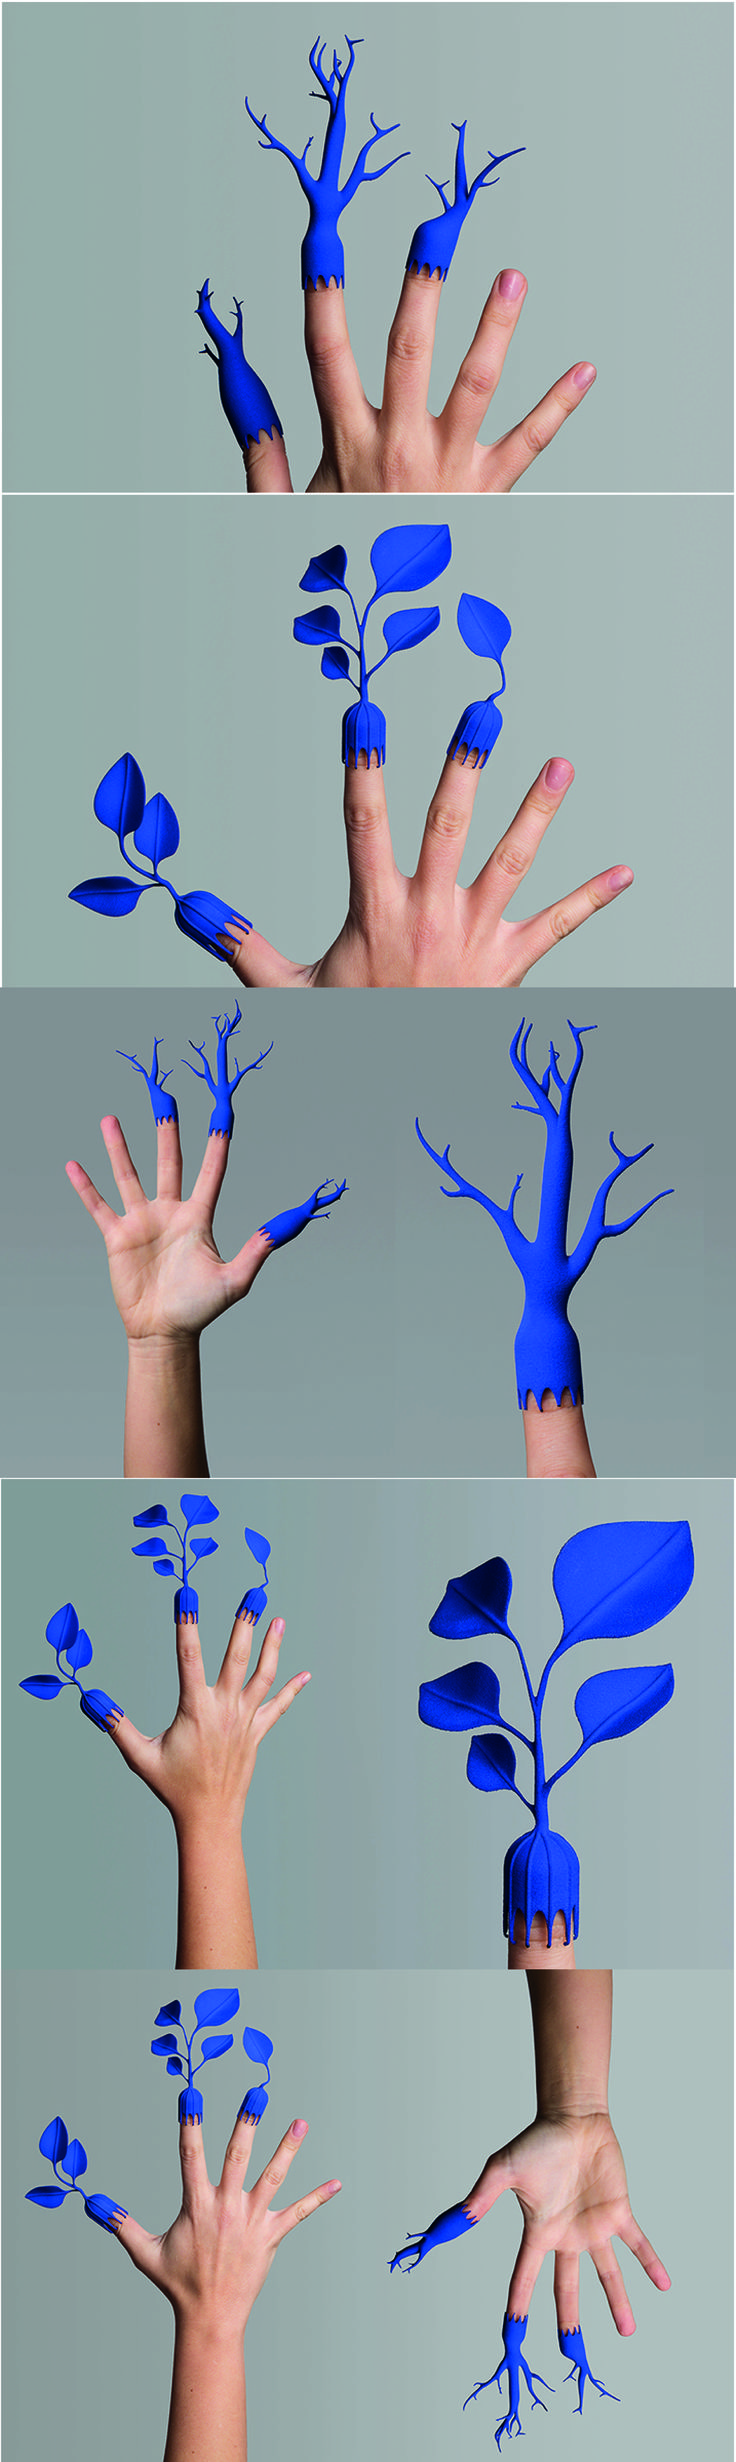 Metamorfosi Vegetali future sensing protheses 2014  Commons: Design for Finger disease